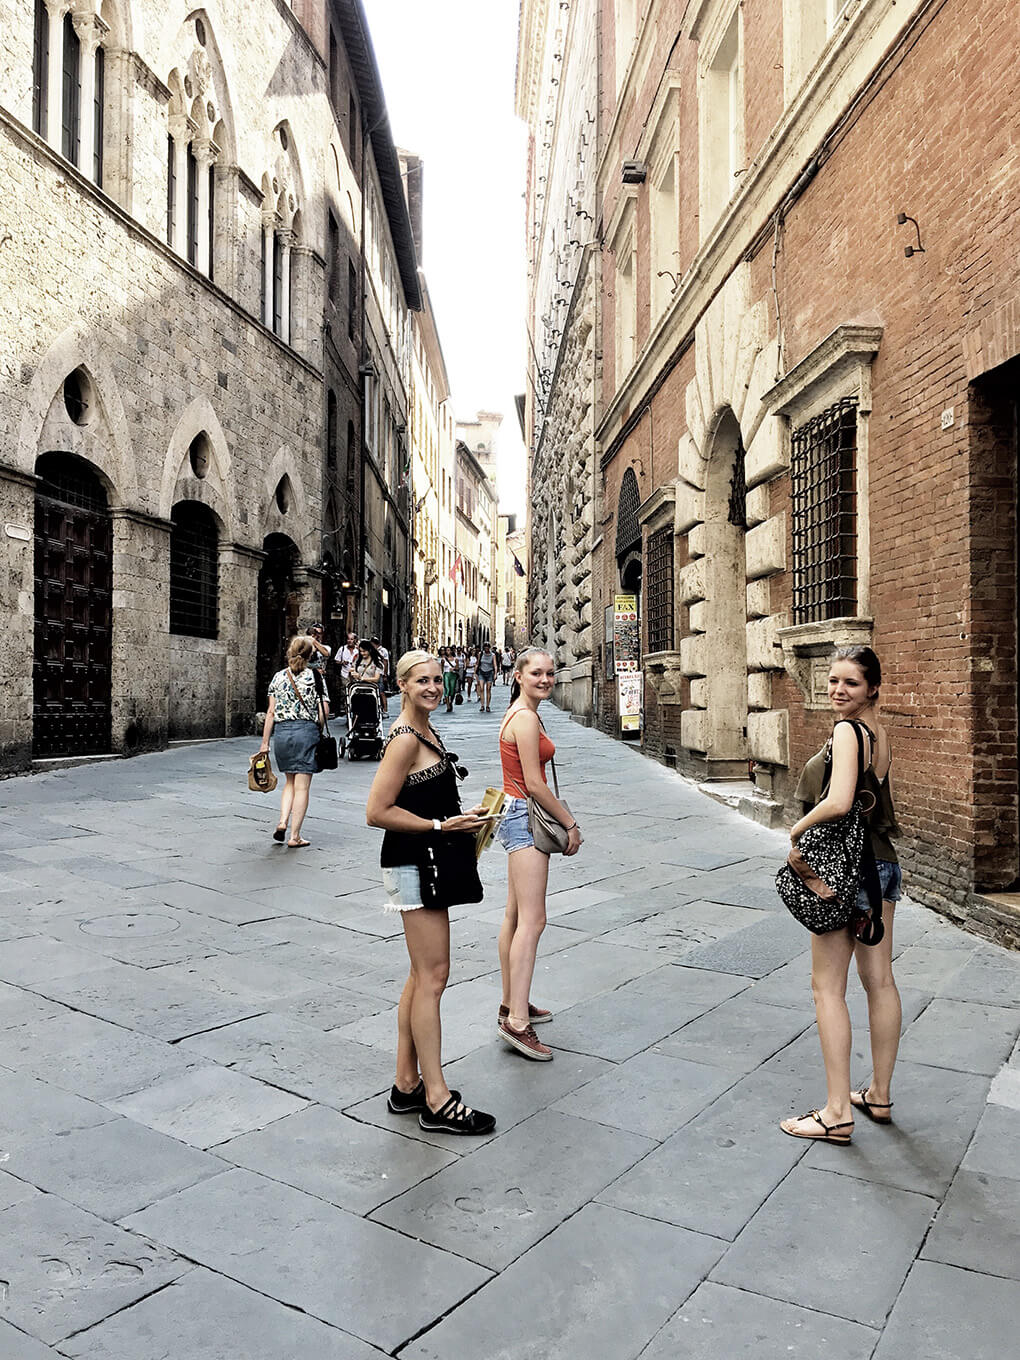 Top 17 Things from Italy www.sarahkayhoffman.com SKH Ceci Camilla Siena #travel #italy